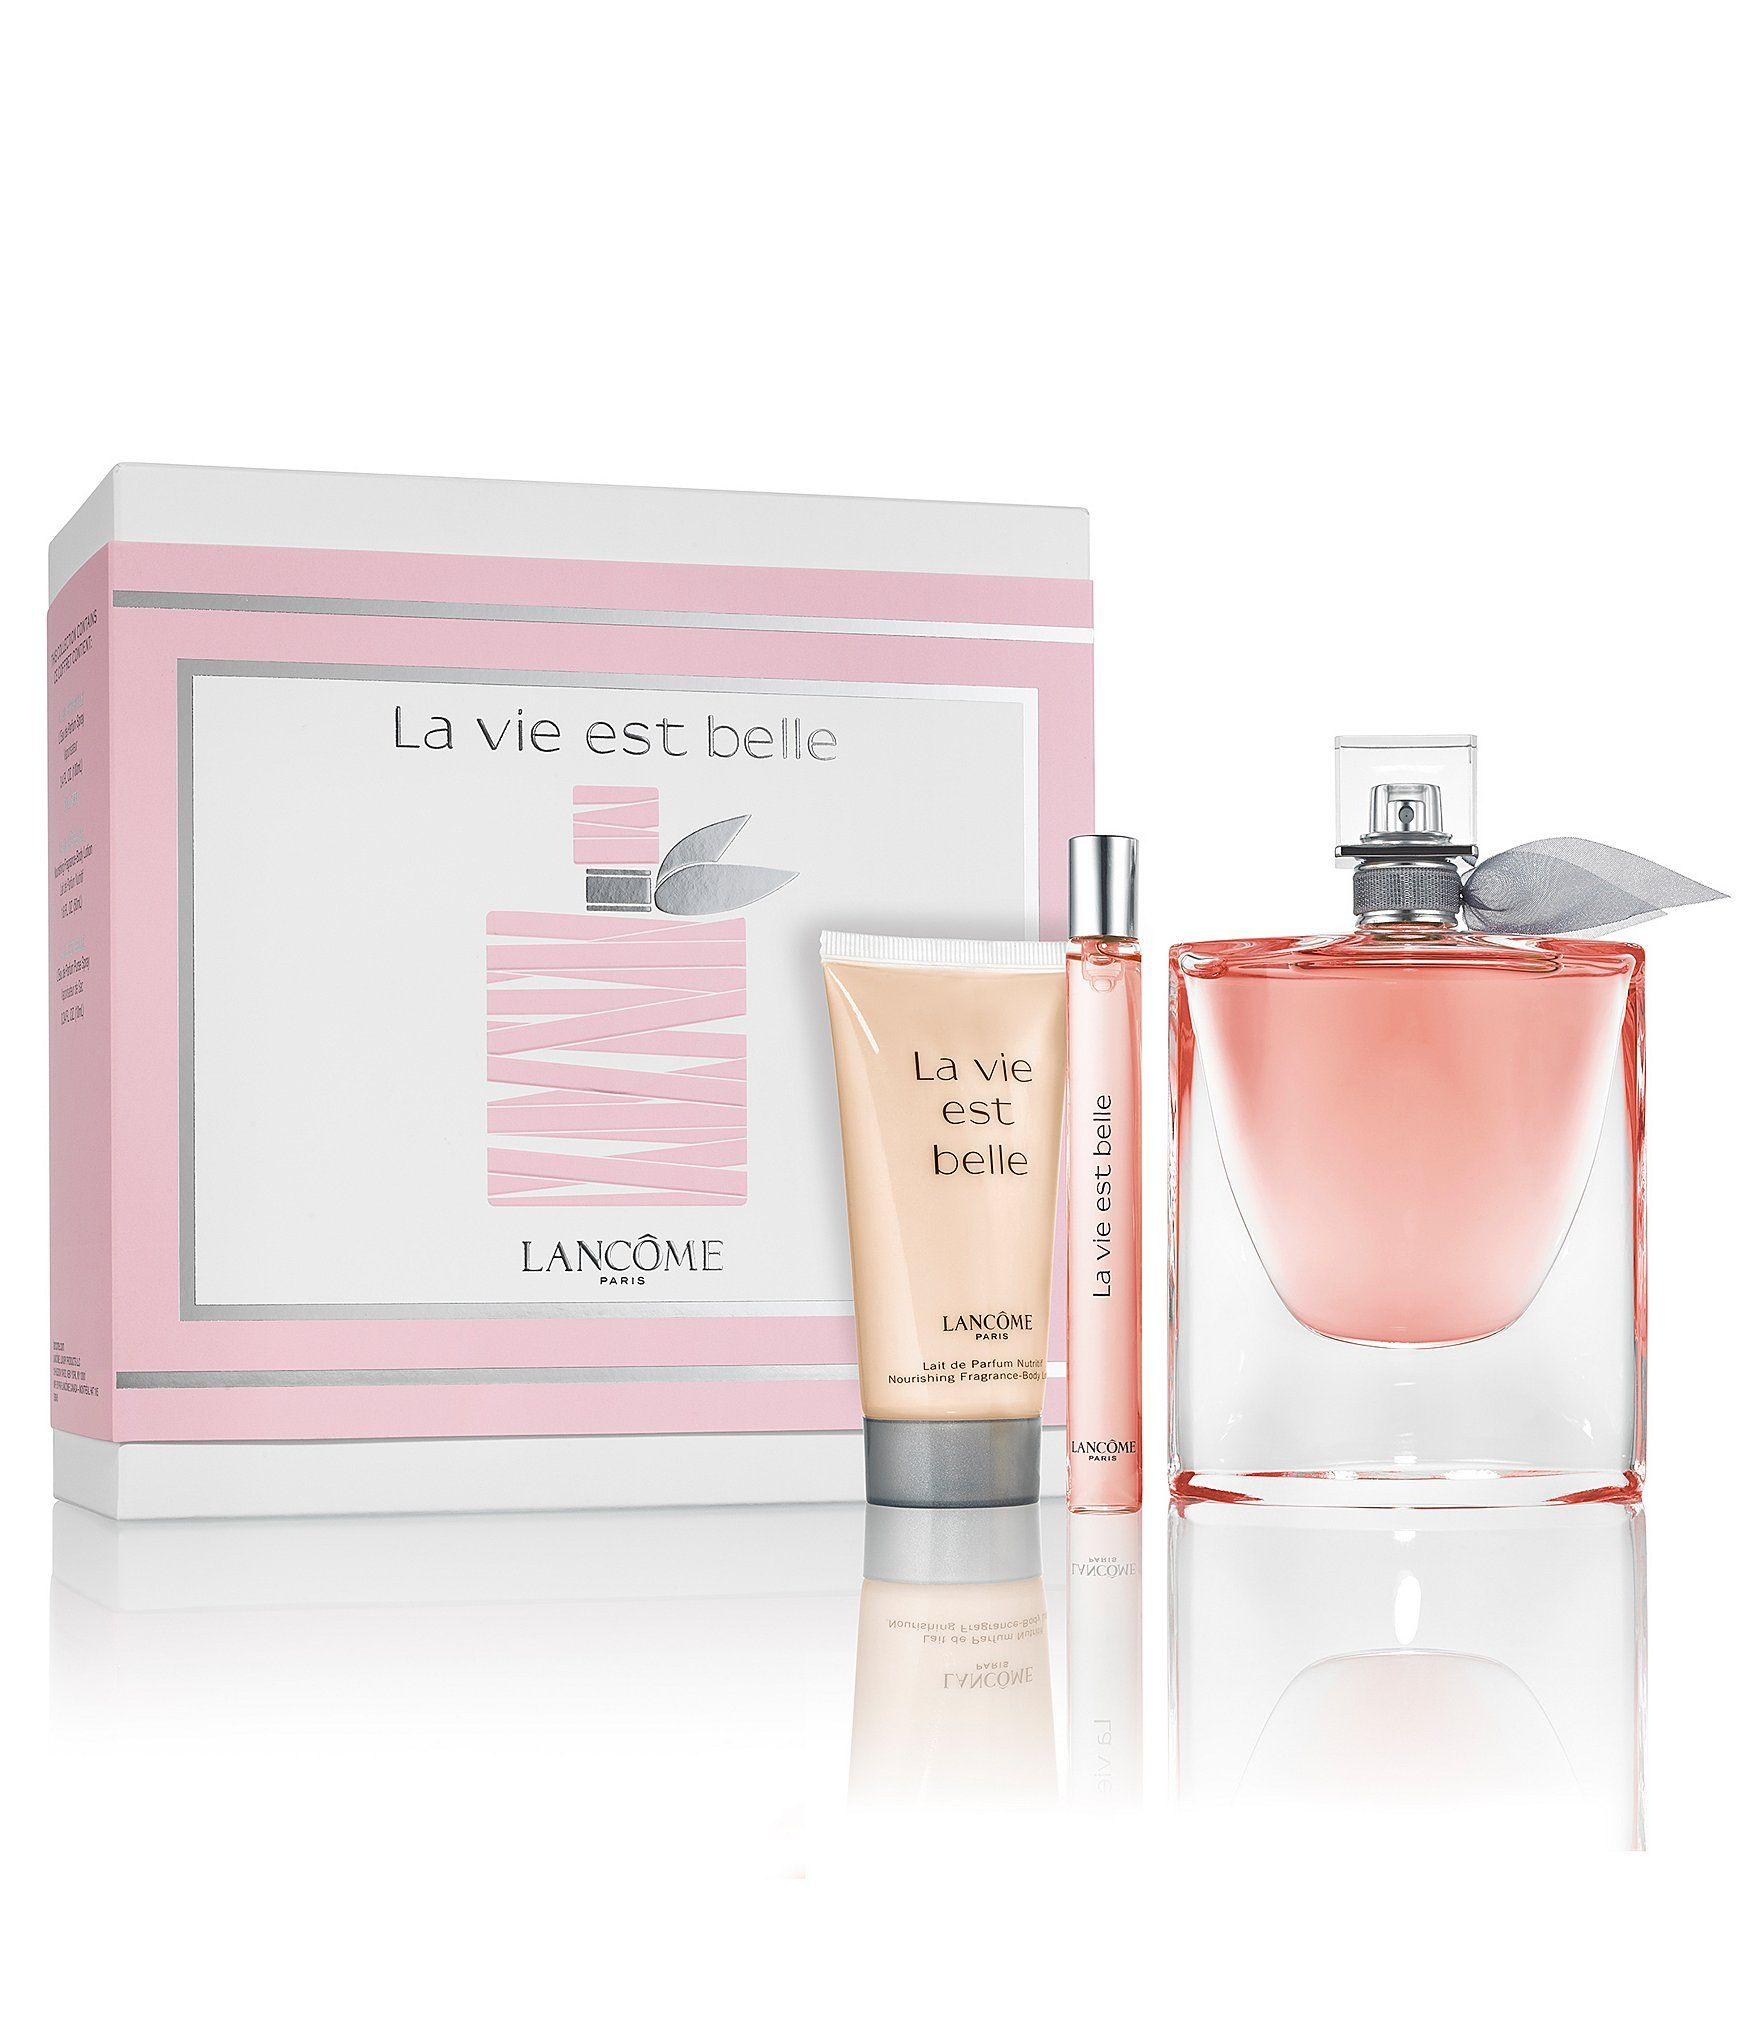 Lancome La Vie Est Belle Spring 2020 Fragrance Gift Set In 2020